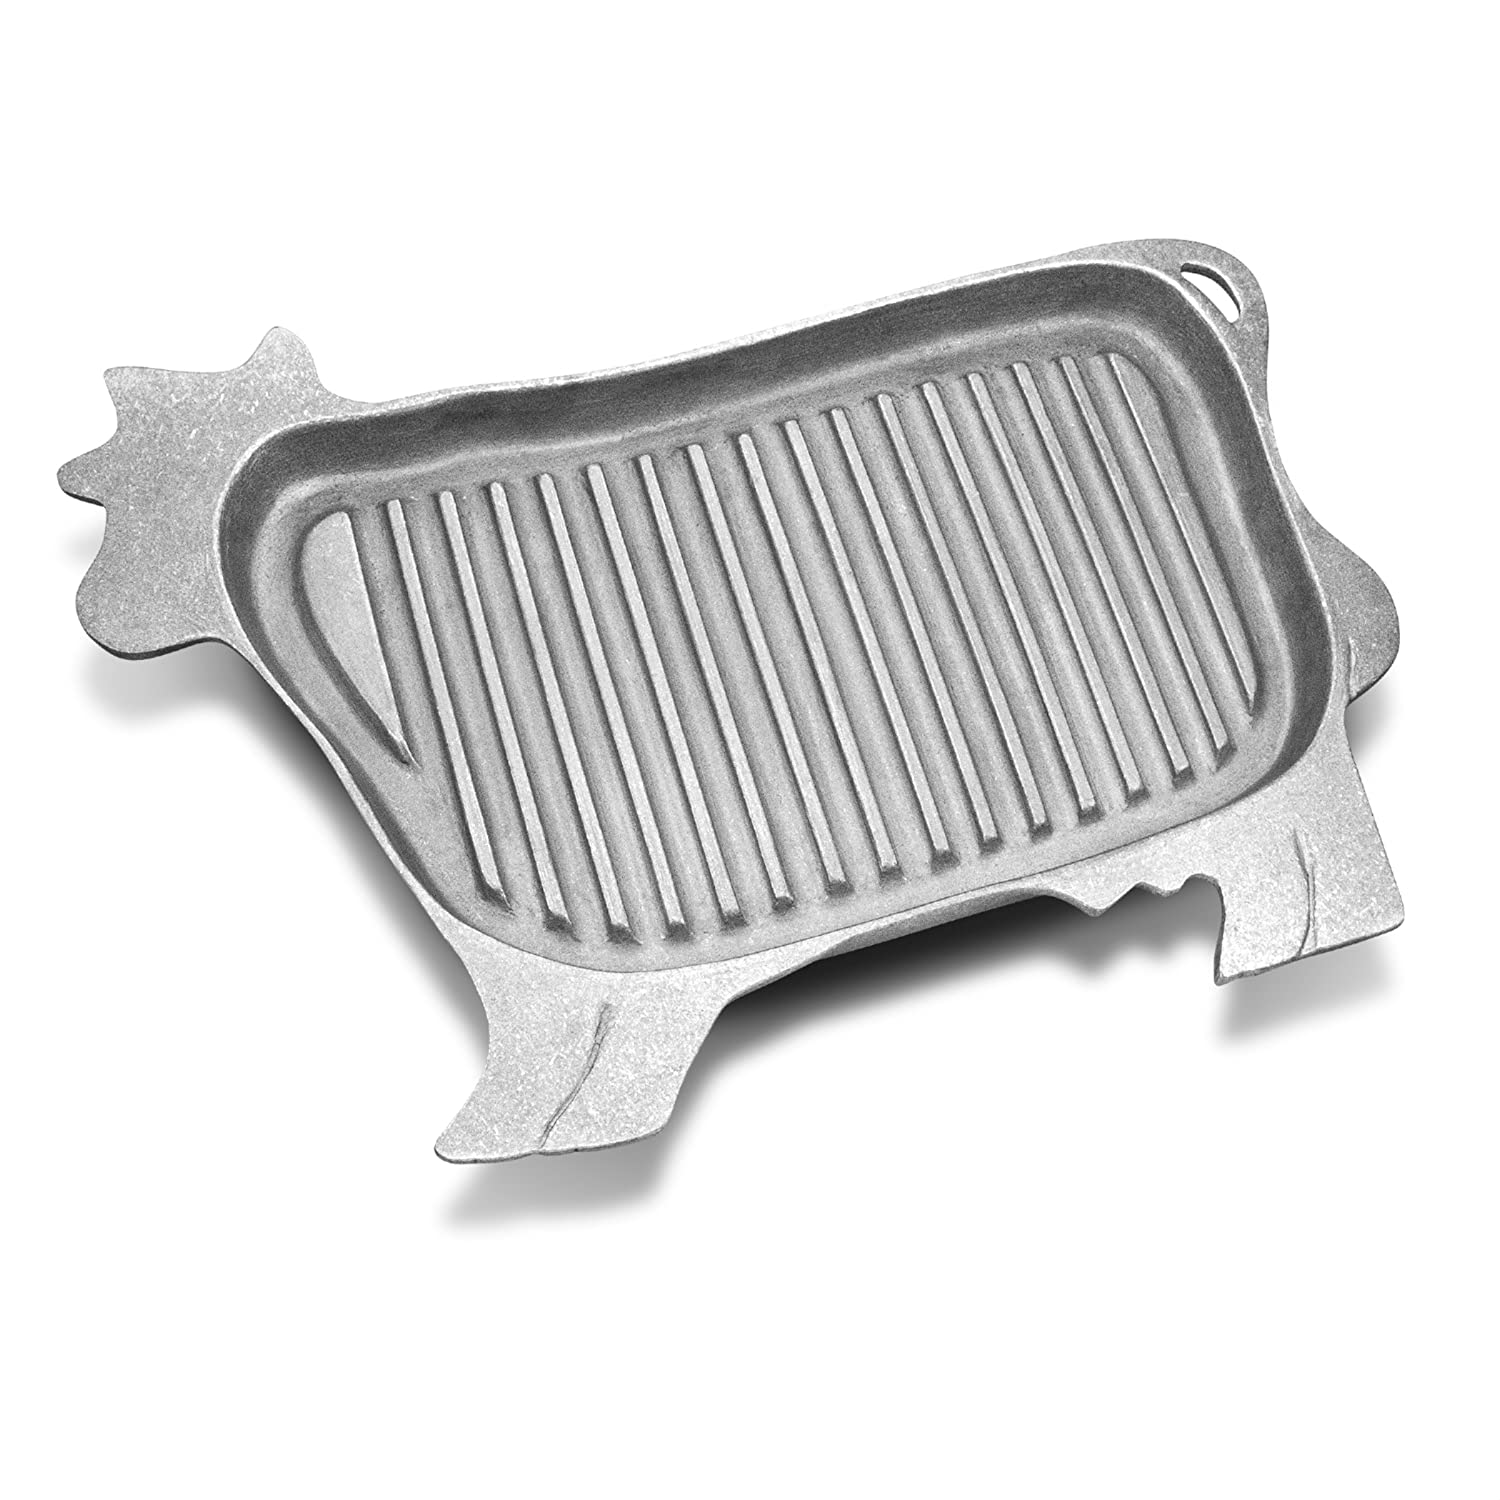 Wilton Armetale Gourmet Grillware Grilling Pan Cow Griller 16.5-Inch